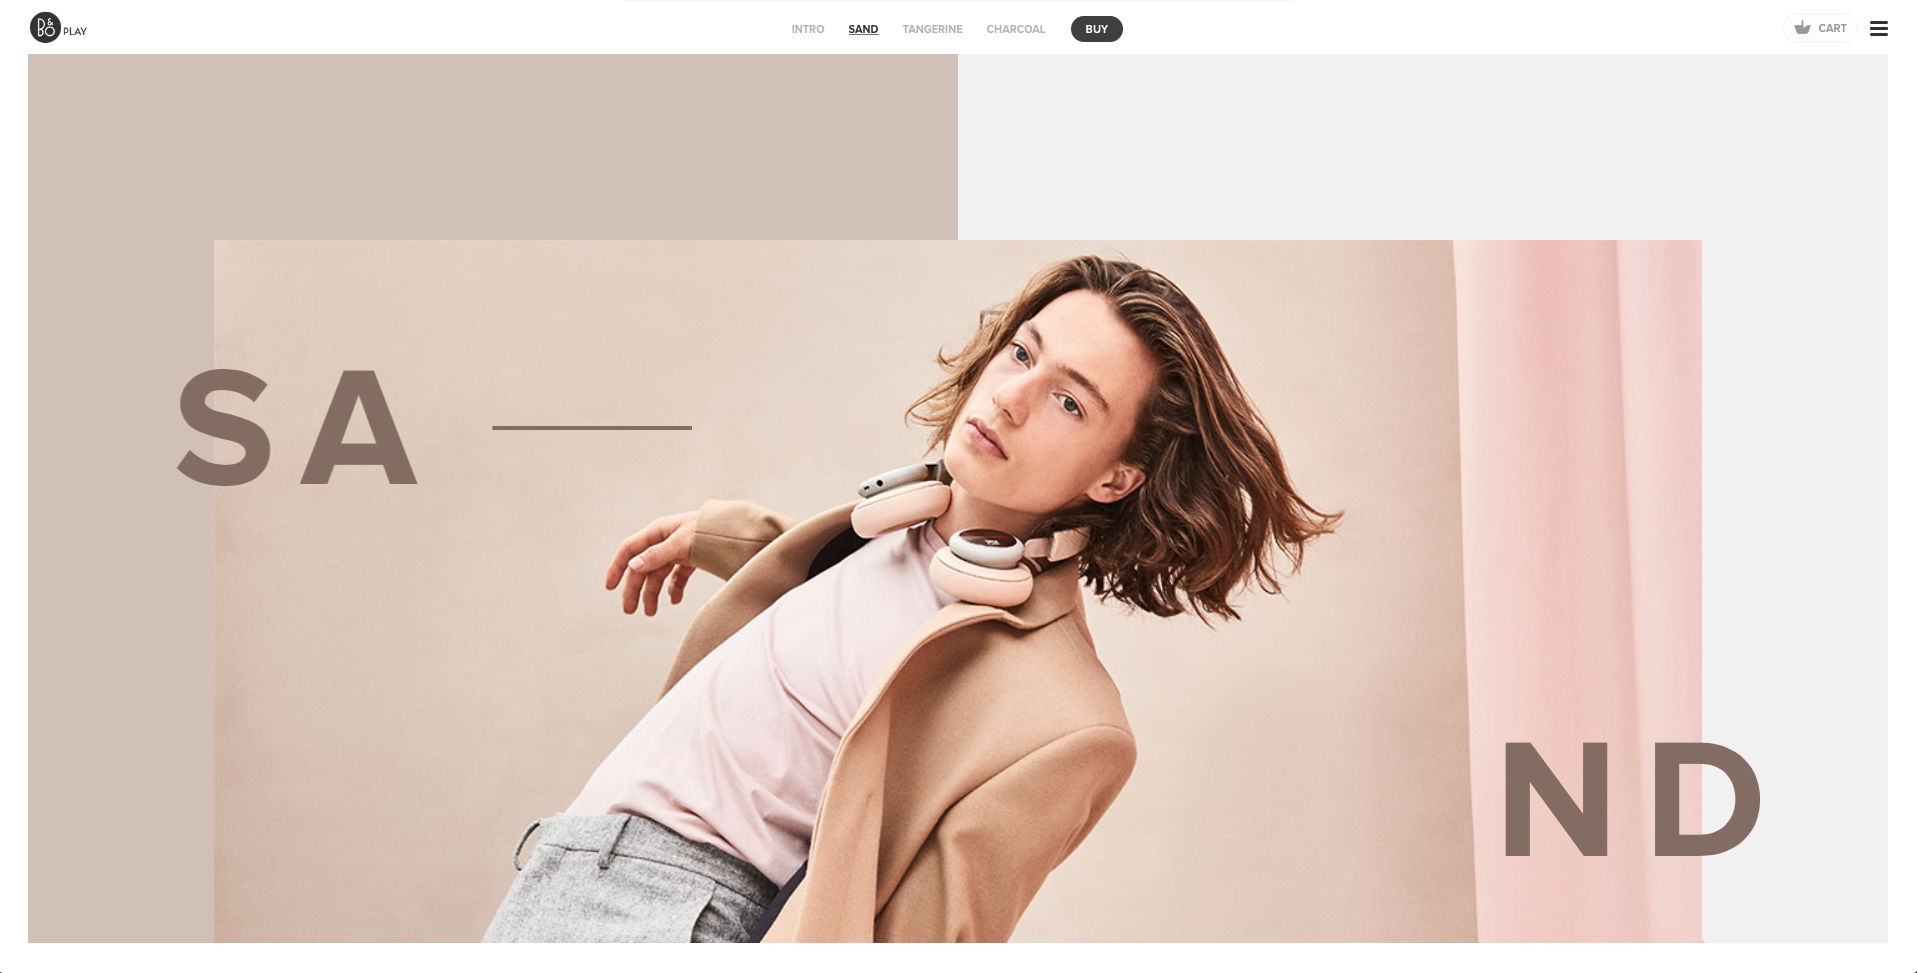 The header image of Beoplay's home page